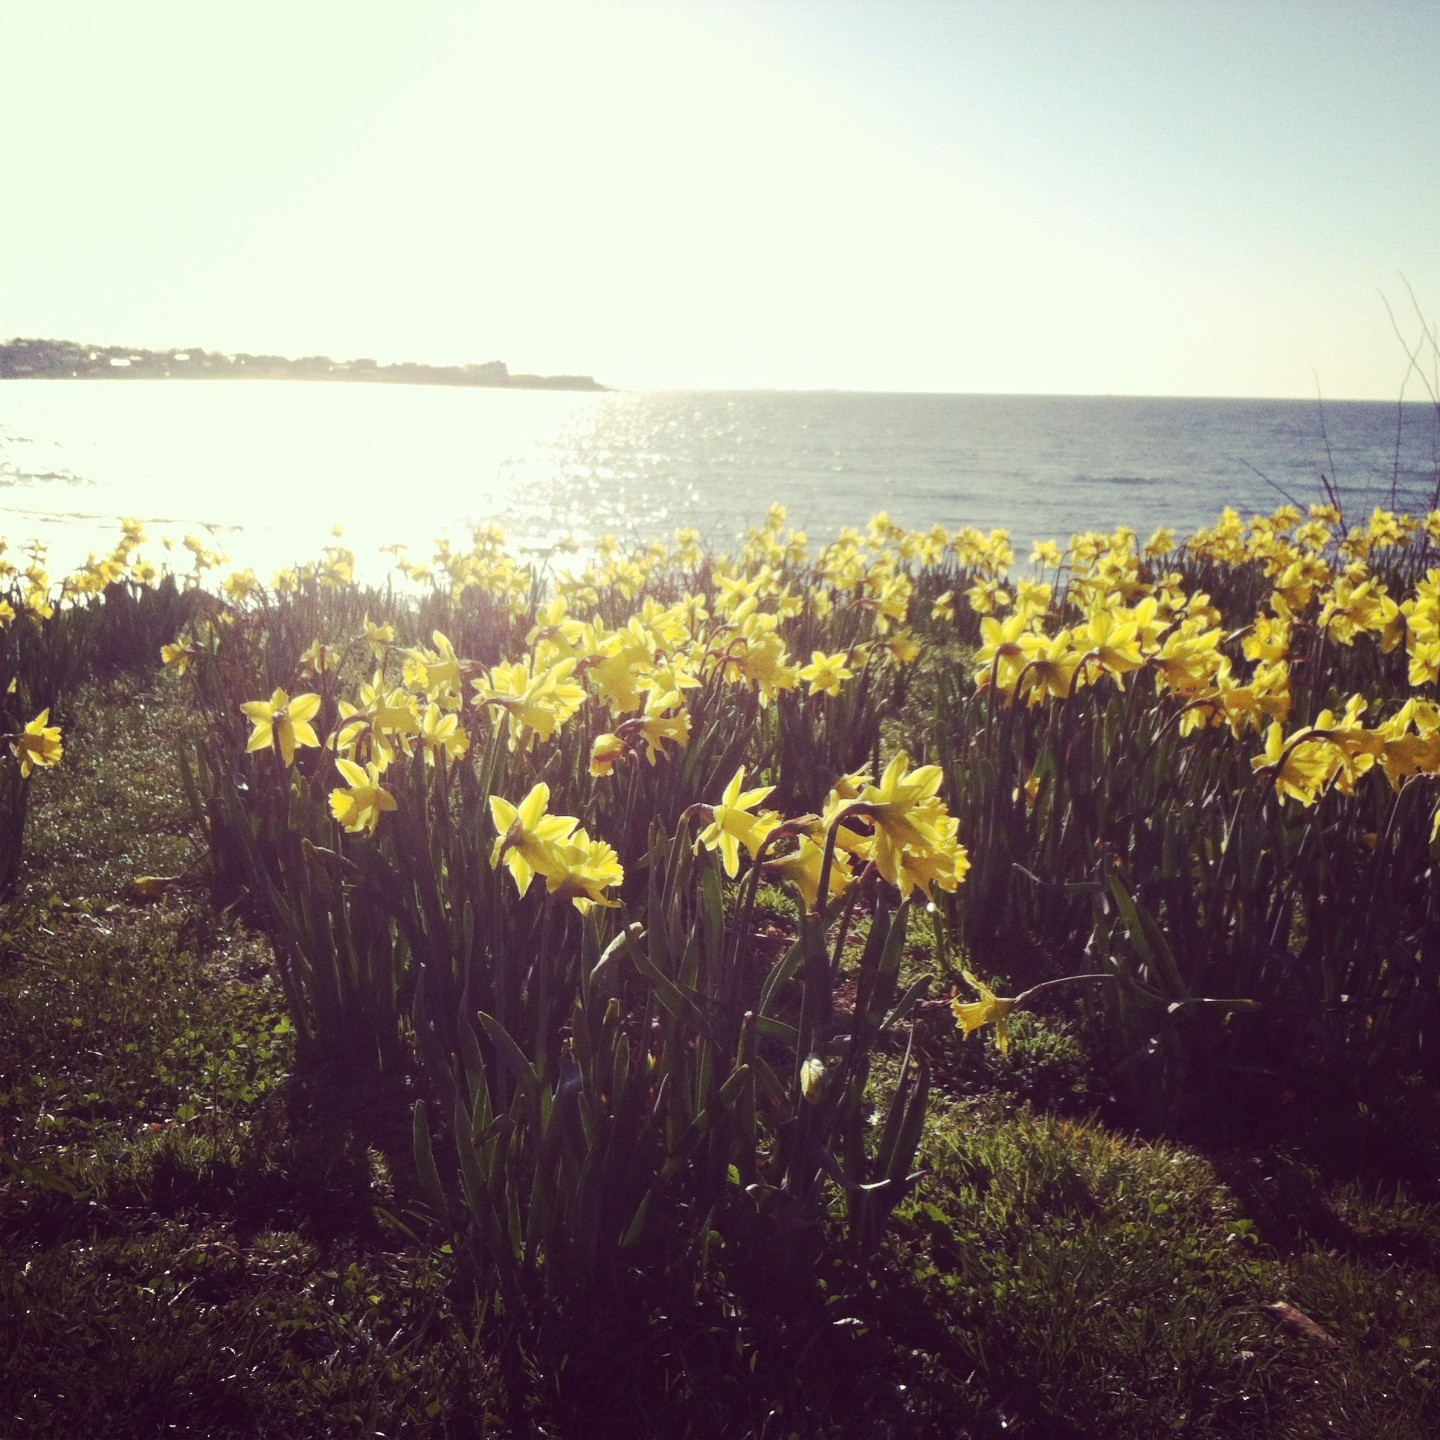 Check out 866,500 daffodils blooming across Newport during the Newport Daffodil Days Festival, April 14-22.